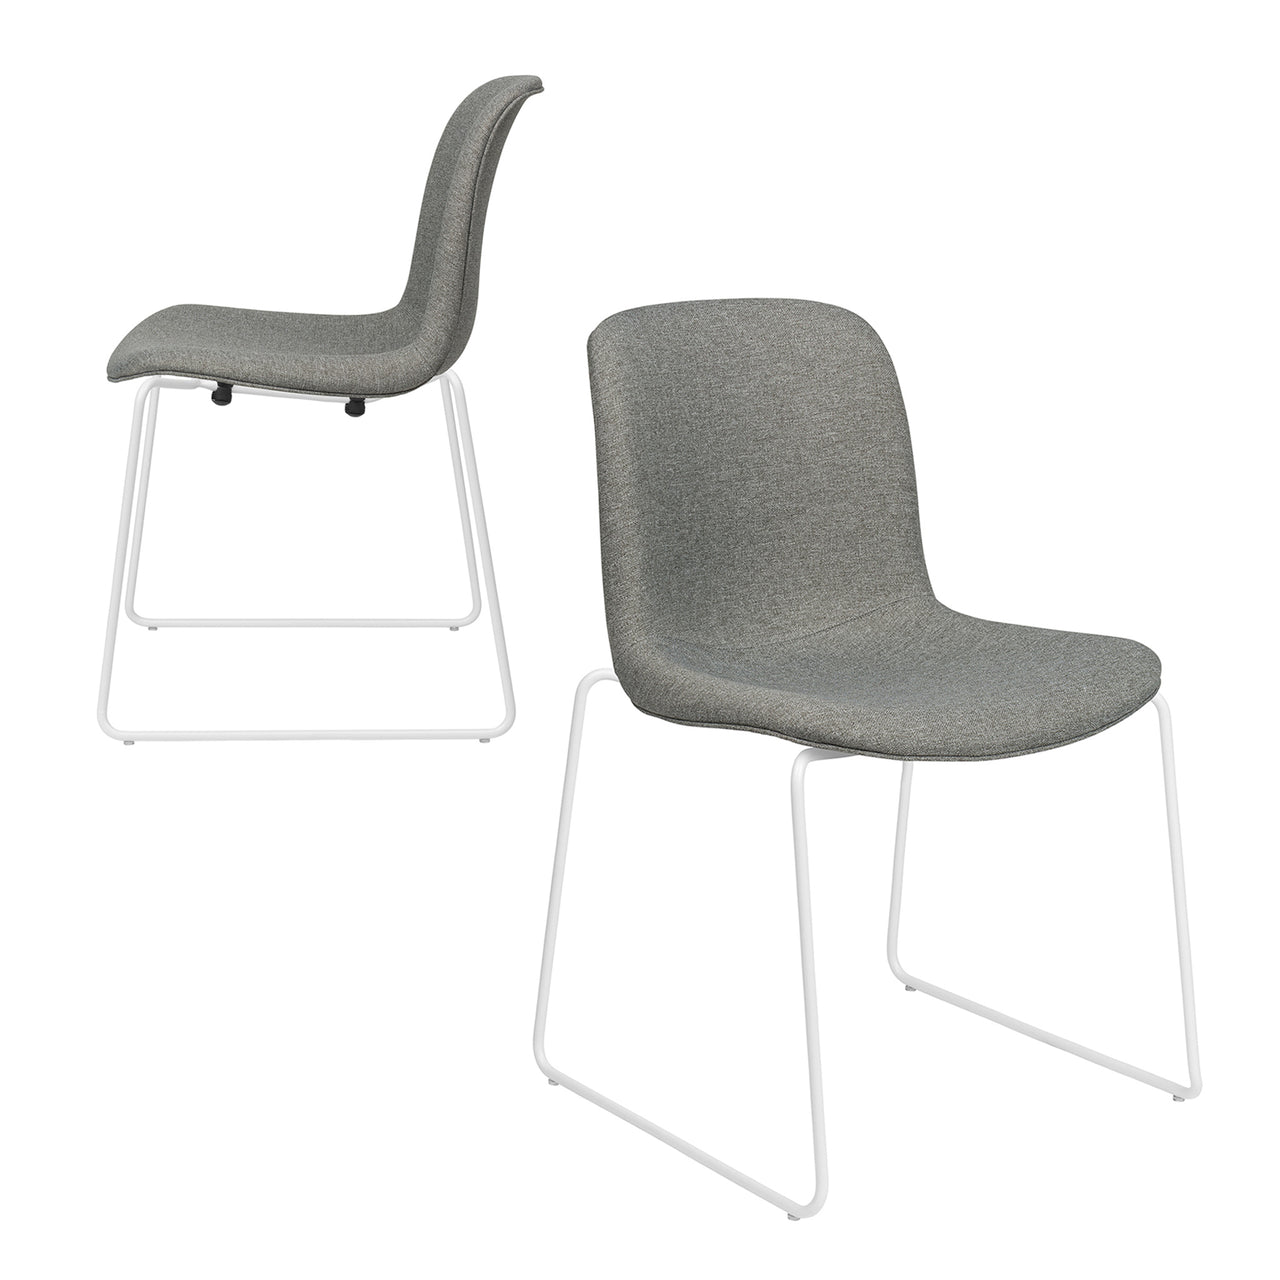 Murray Stackable Side Chairs, Sled Base, Set of 2 (Grey Fabric)